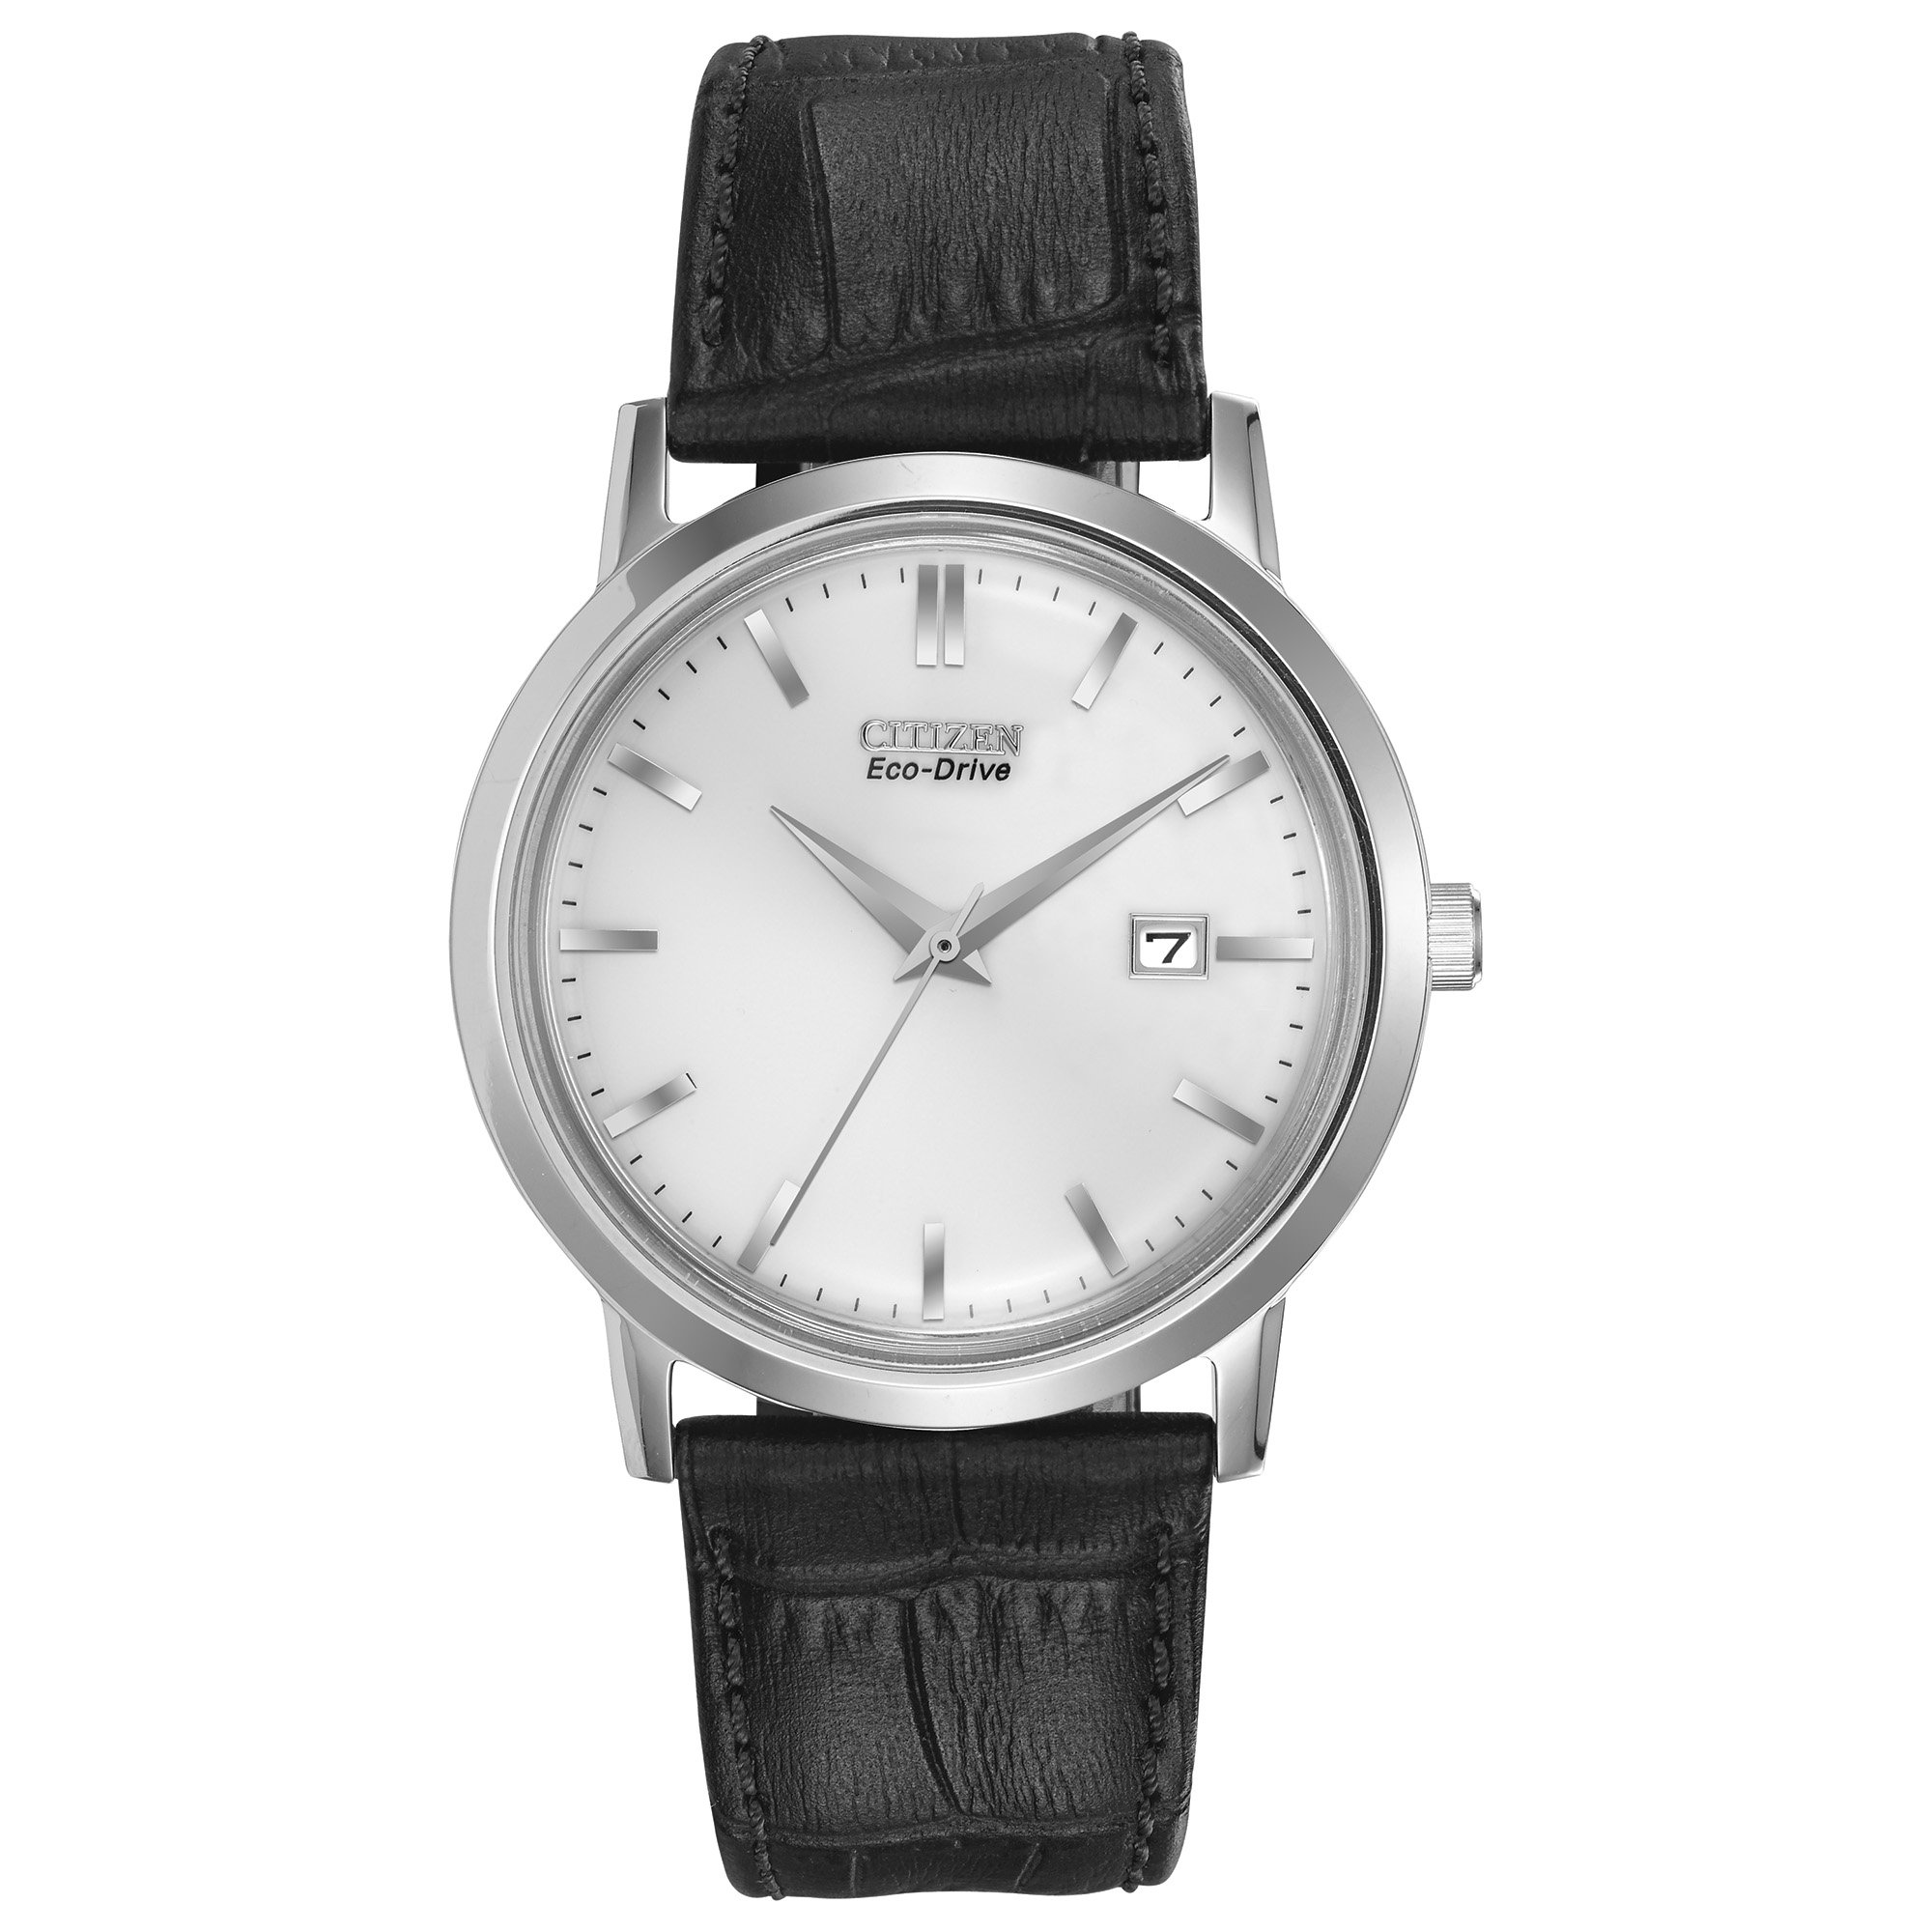 Men's Eco-Drive Stainless Steel Watch with Date, BM7190-05A